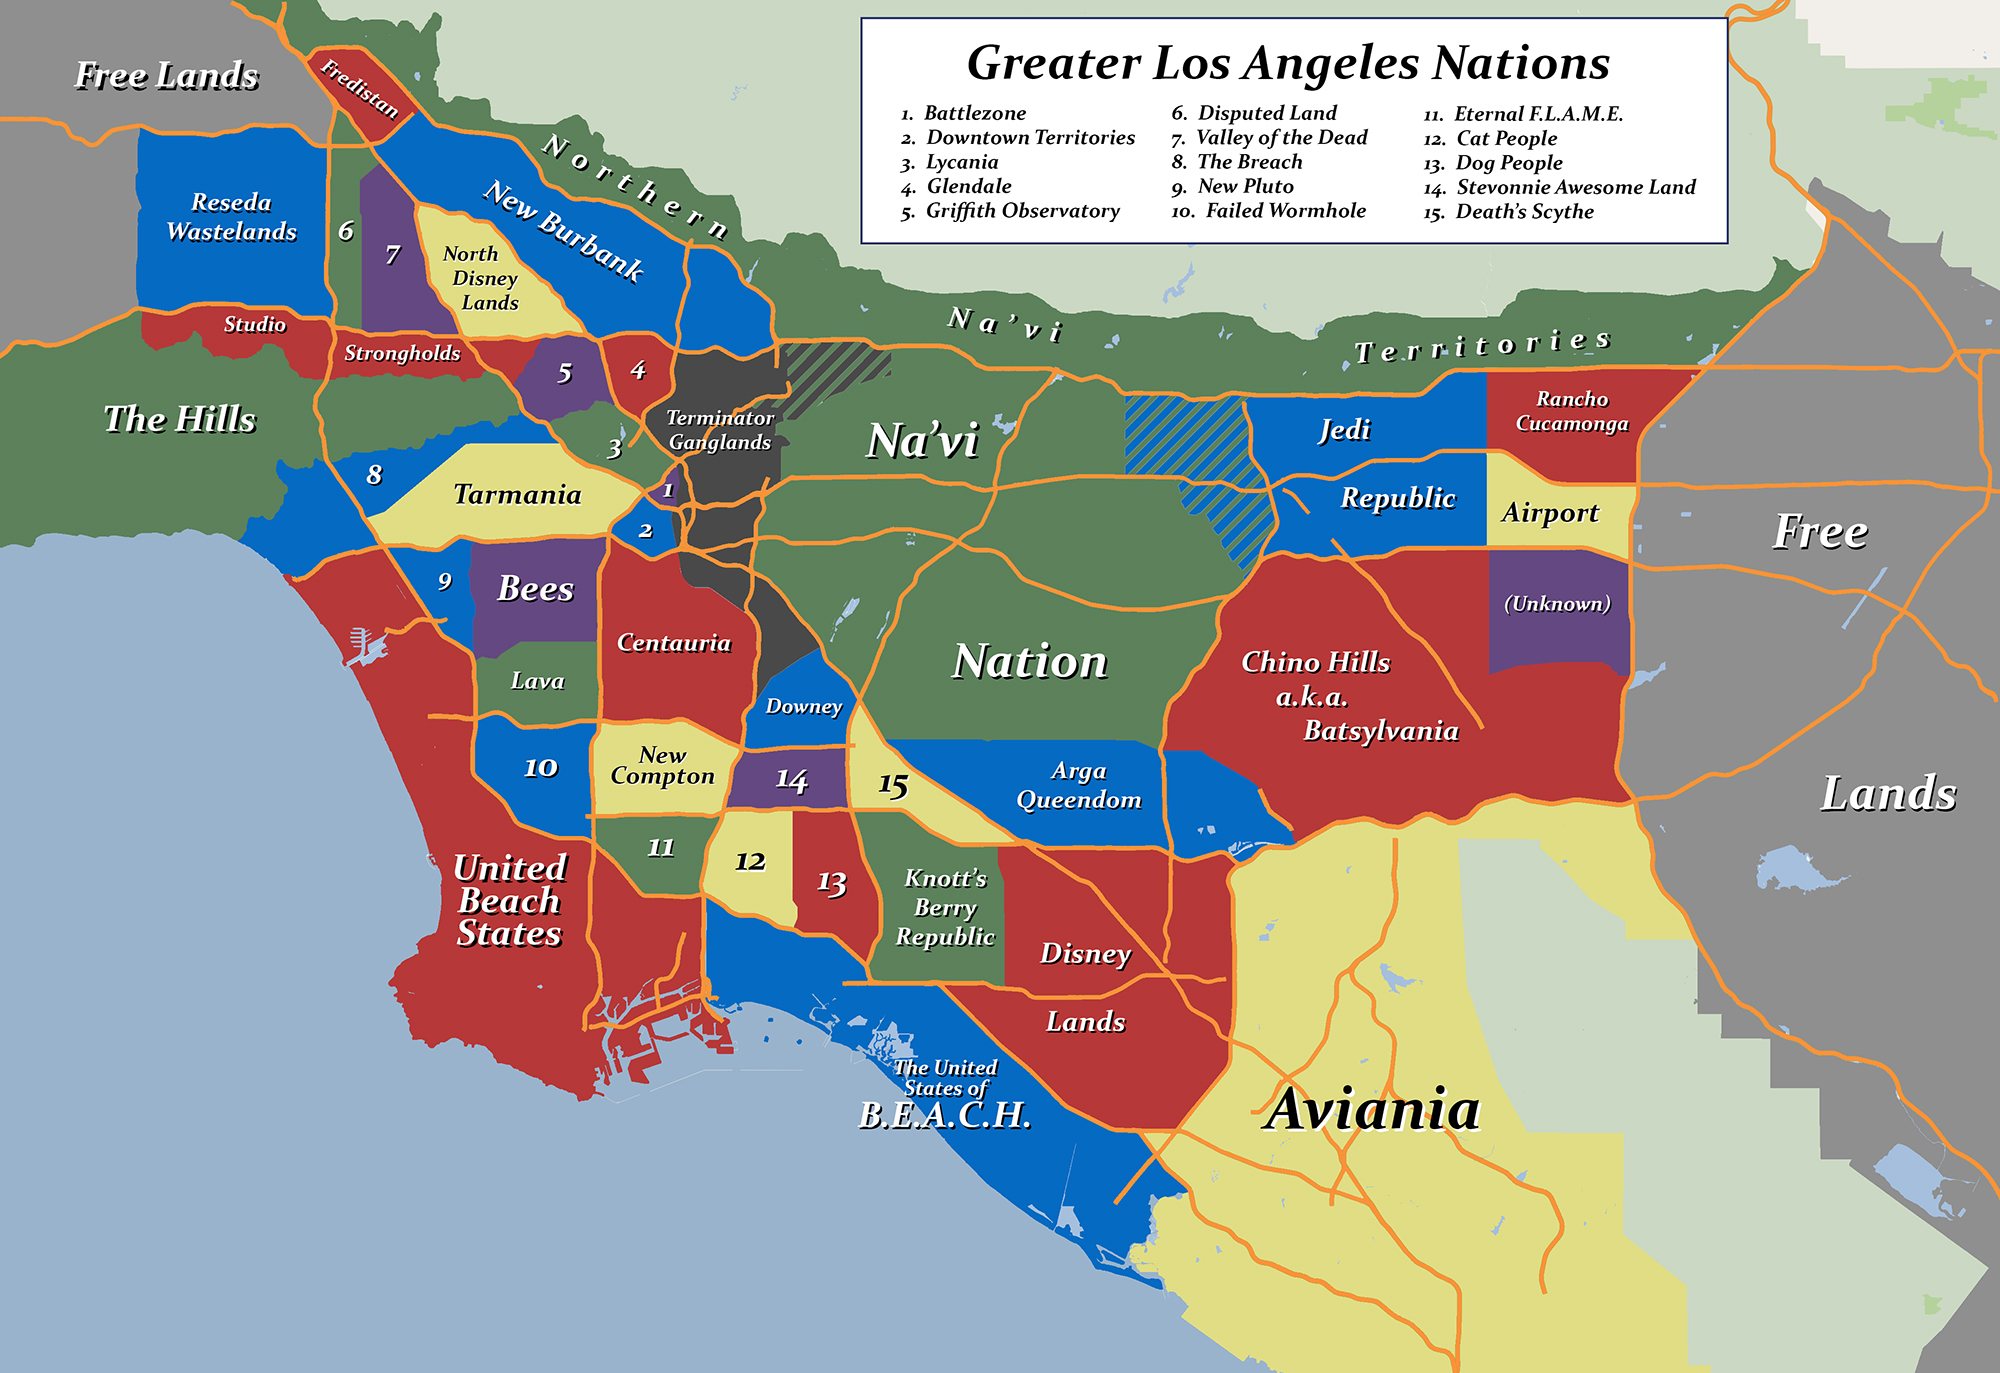 New Nations Form In Los Angeles Gridlock The New Romford Free Press - Los angeles map gangs